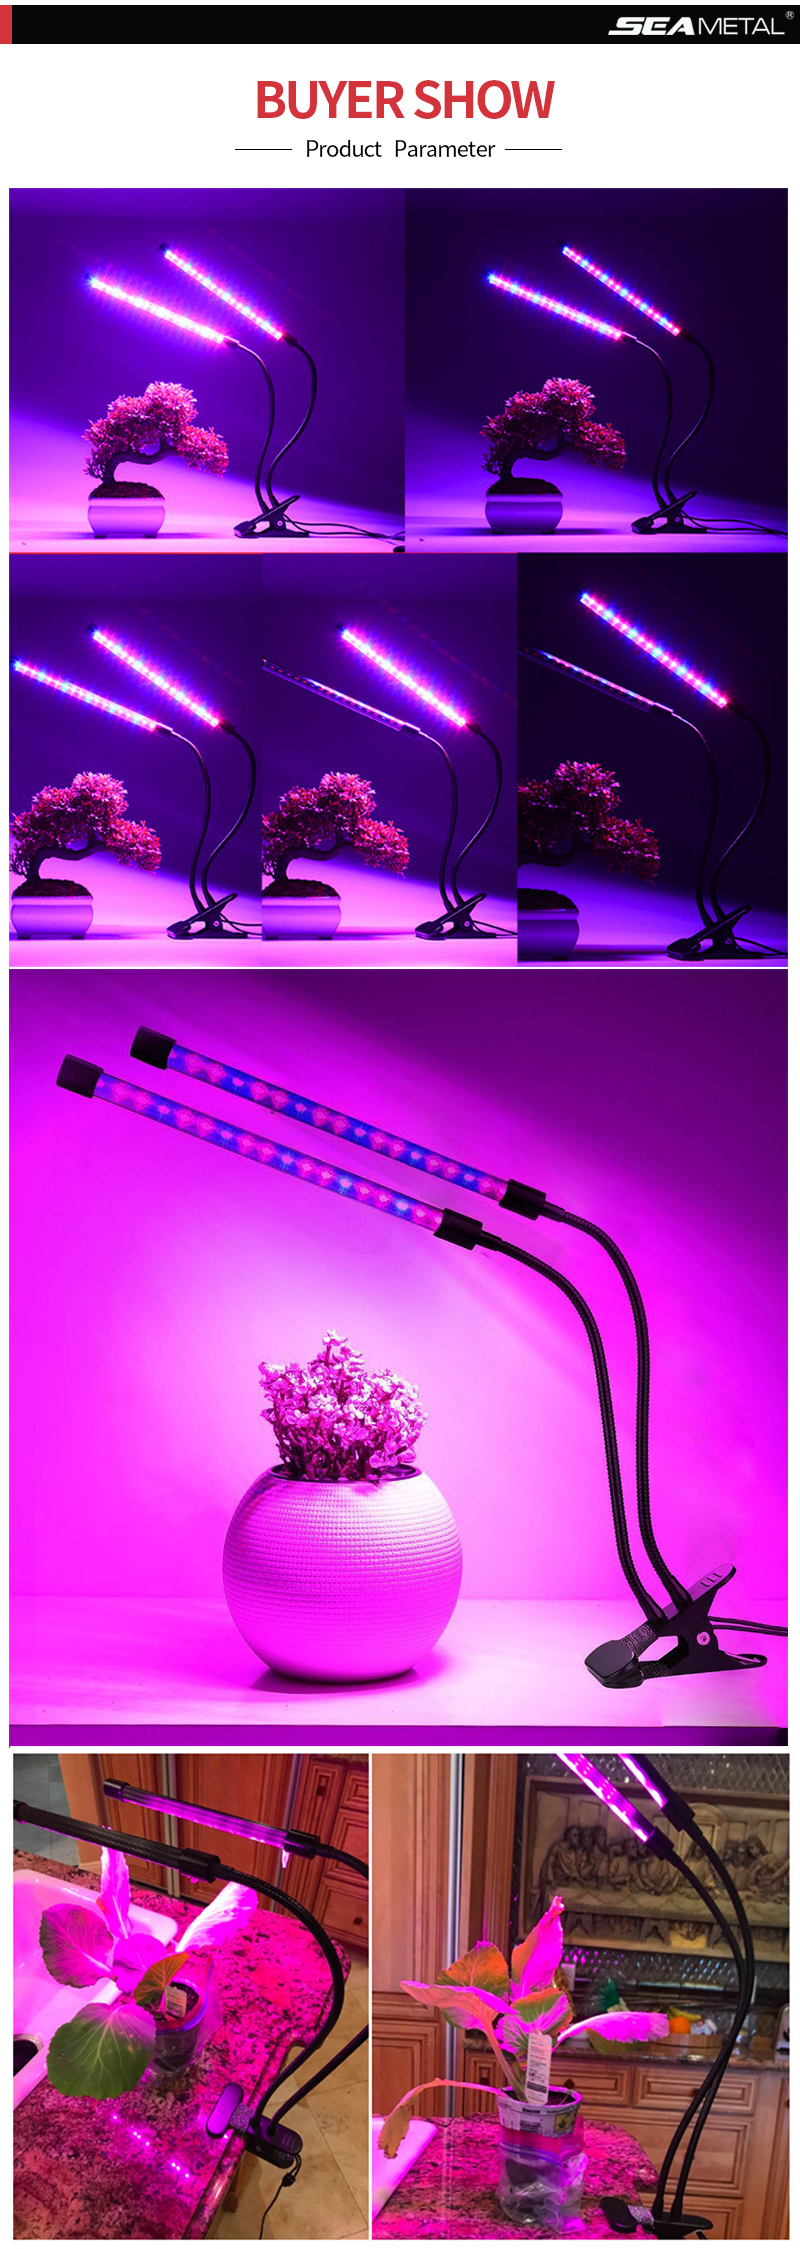 4 Led Grow Light 6W Lamps For Plants Full Spectrum Phyto Lamp Led Seedling Lights Indoor Plant Growing Greenhouse Flower Lamps